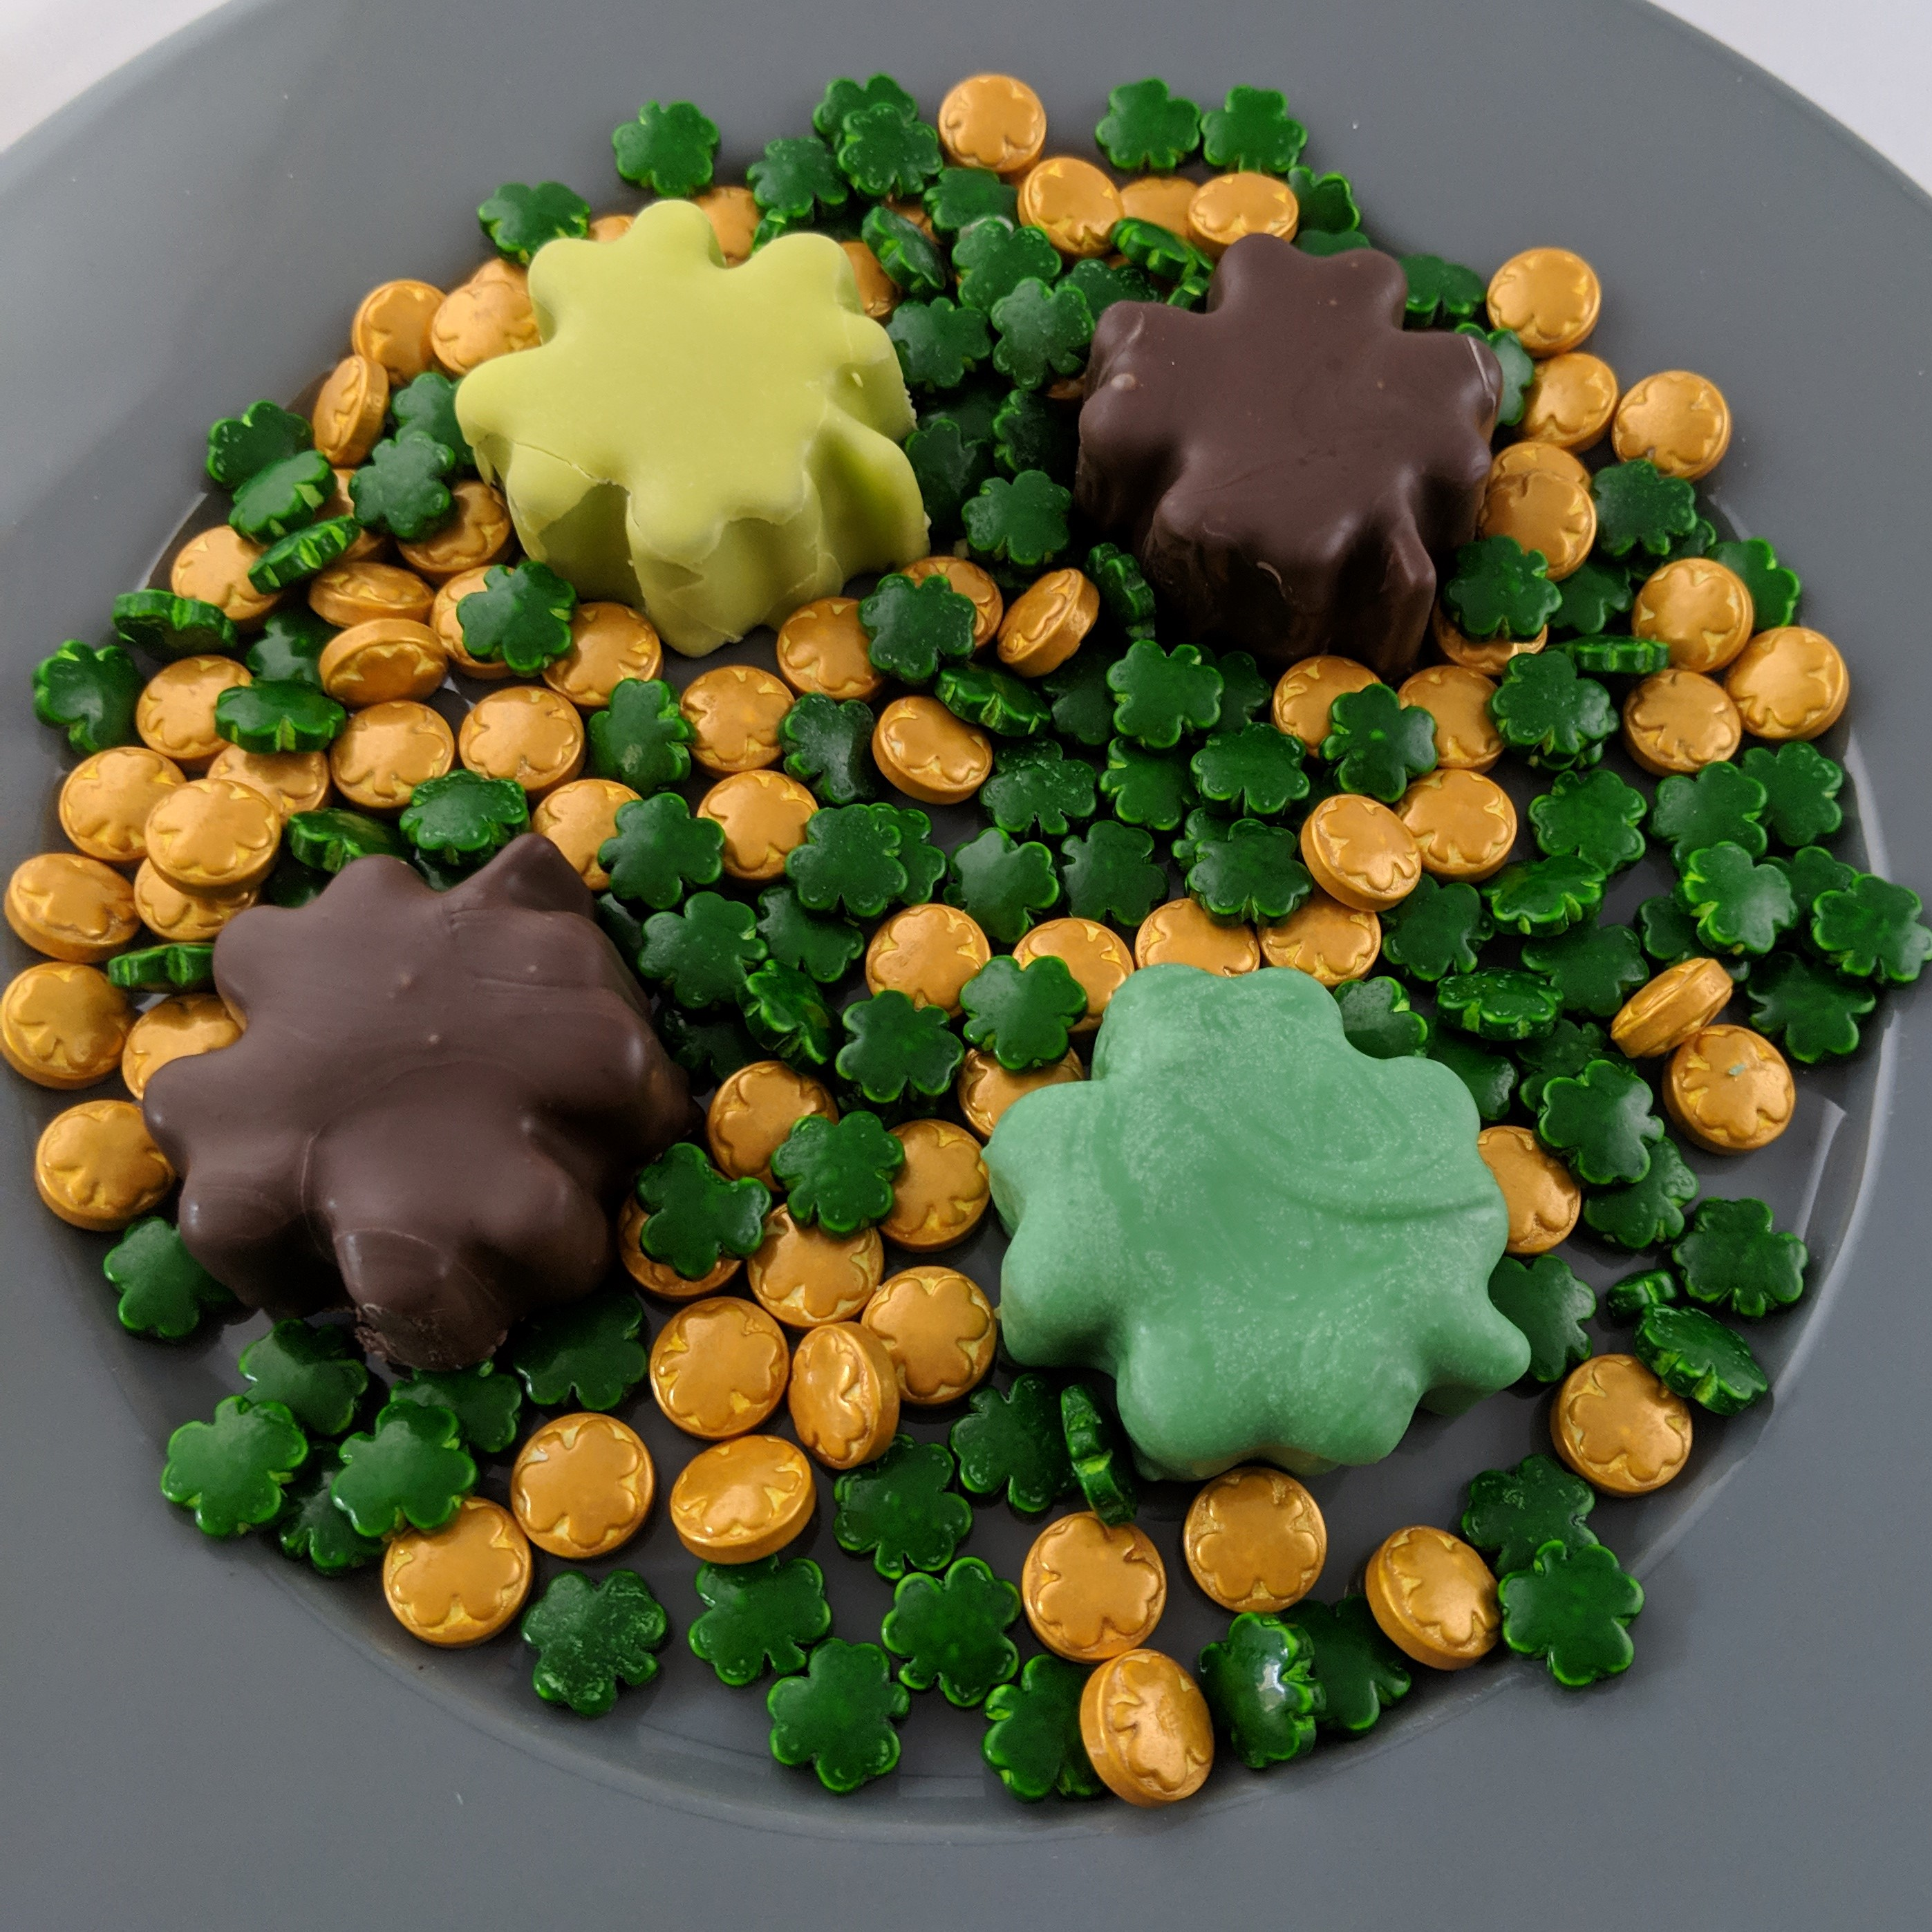 Chocolate Covered Gummies, Happy Saint Patrick's Day!